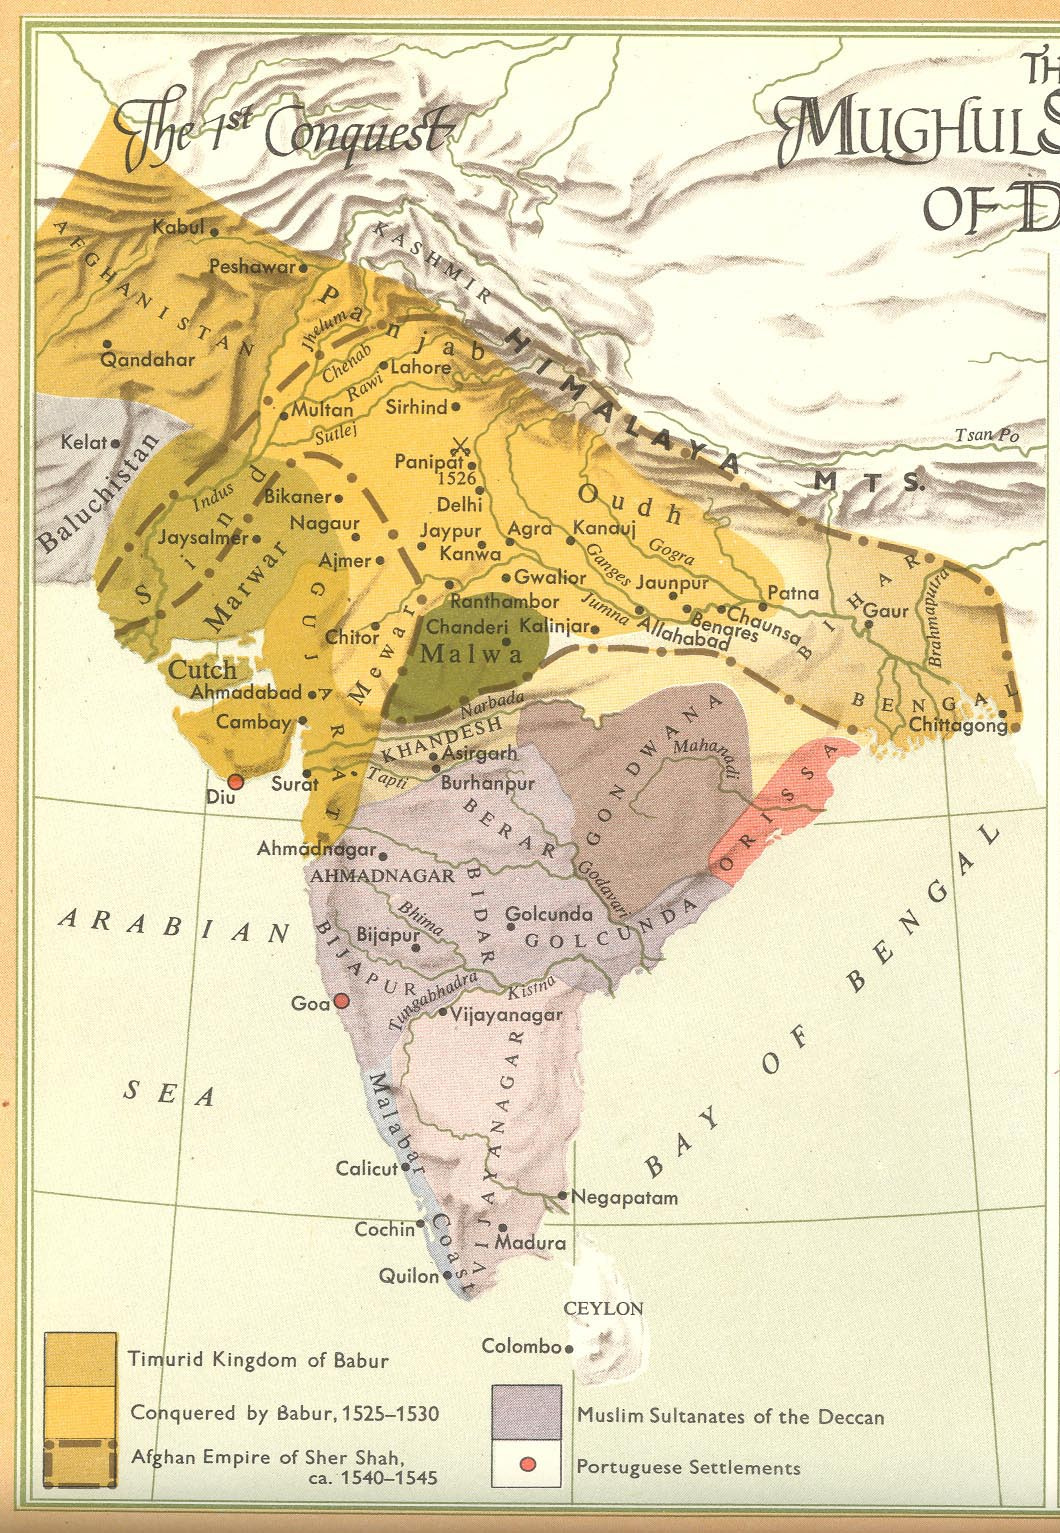 rise and fall of mughal empire pdf